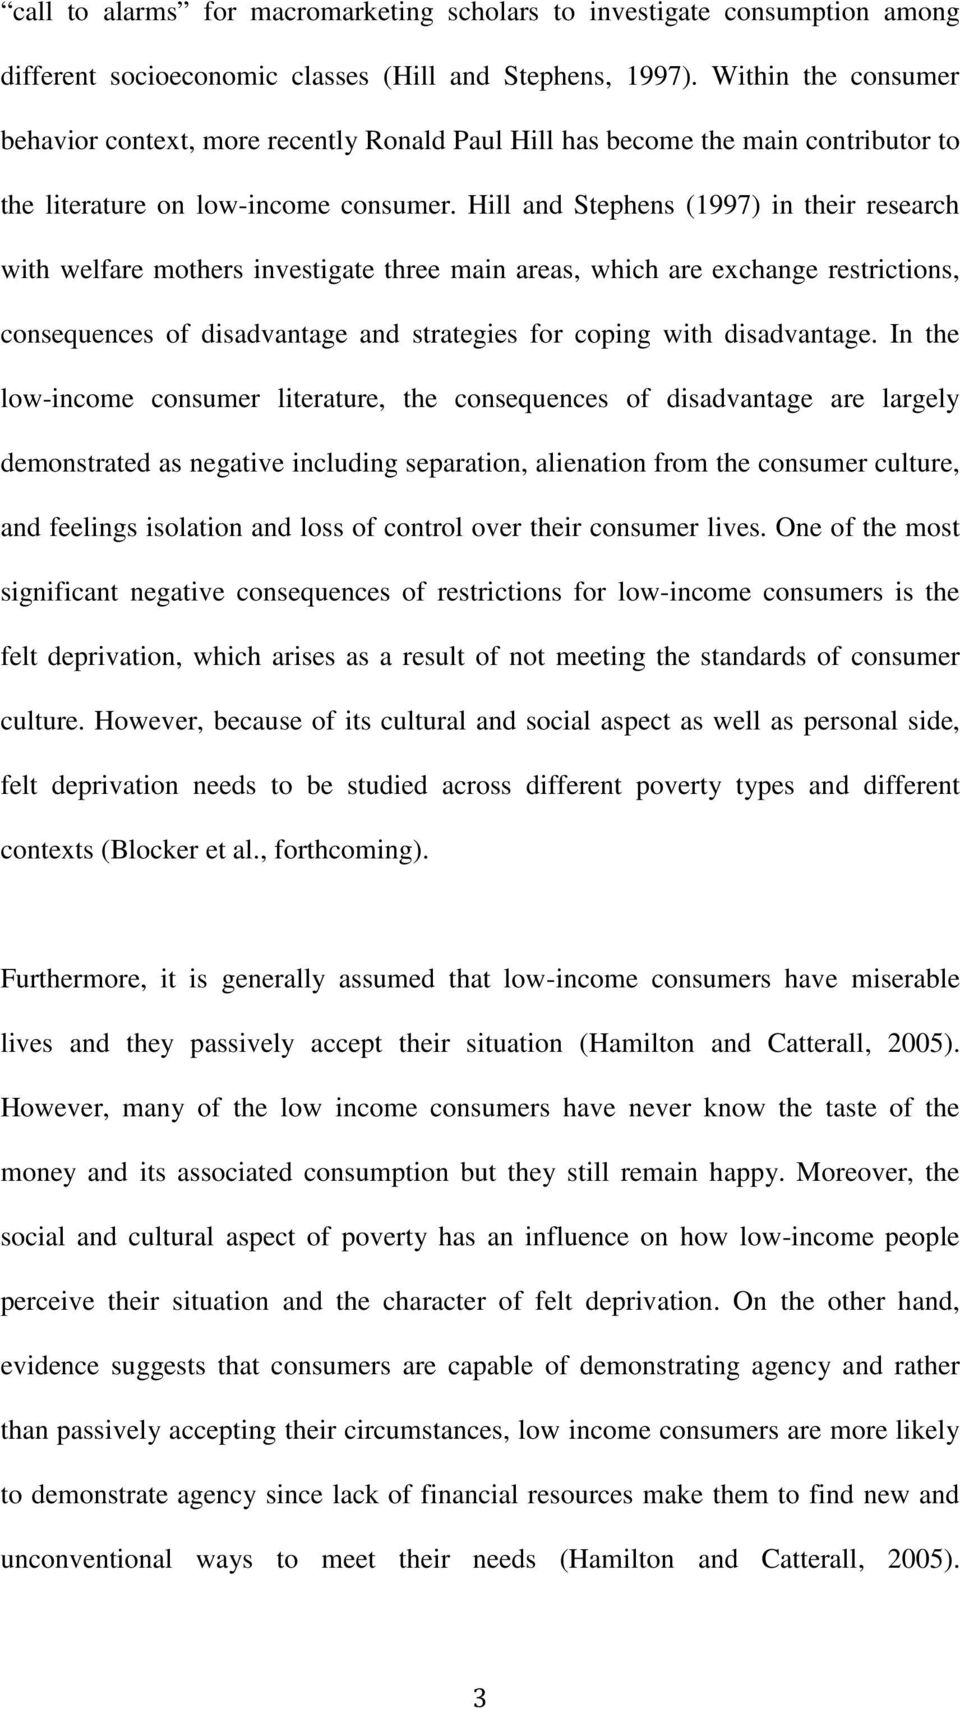 Hill and Stephens (1997) in their research with welfare mothers investigate three main areas, which are exchange restrictions, consequences of disadvantage and strategies for coping with disadvantage.